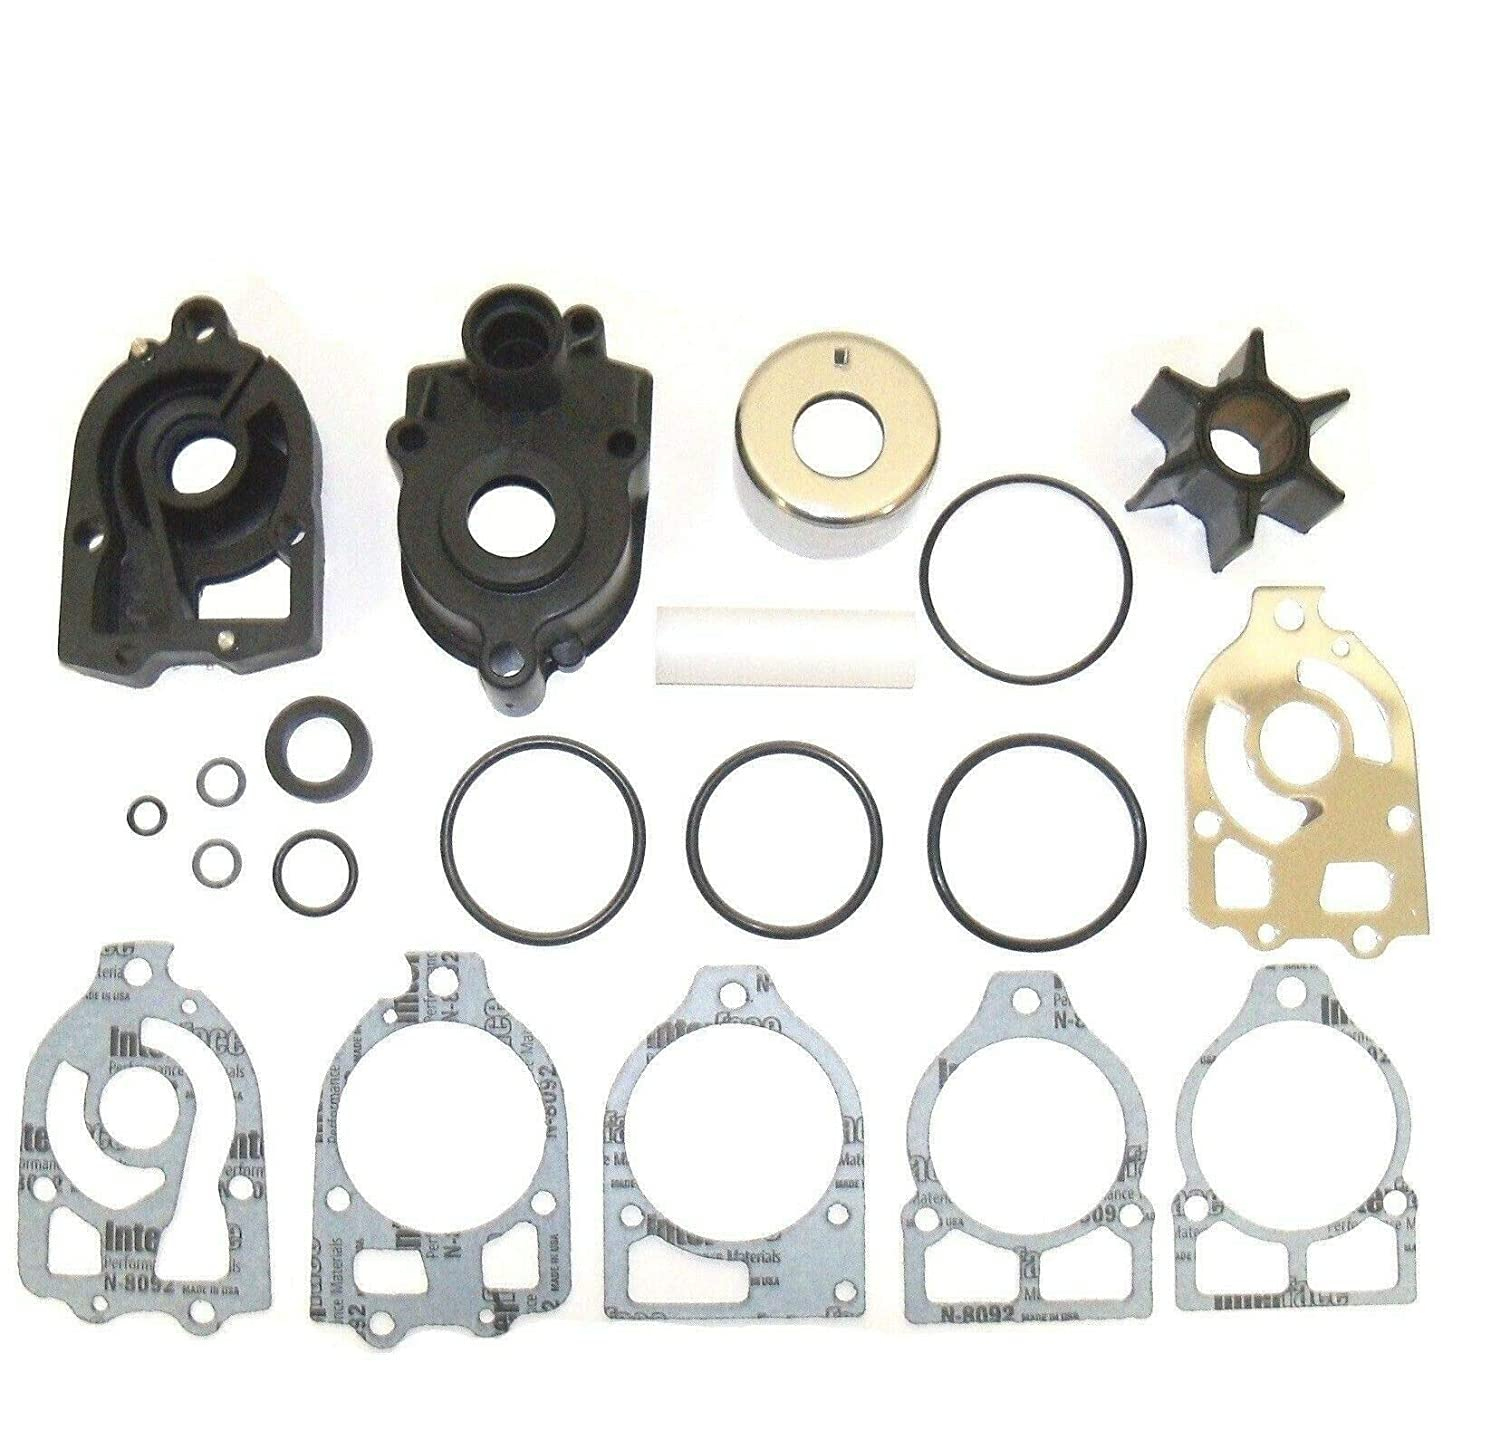 46-42579A4 EMP Water Pump Kit for Mercury V6 135 150 175 200 220 Hp V135 V150 V175 V200 V220 XR4 XR6 Replaces 18-3319 46-8M0077147